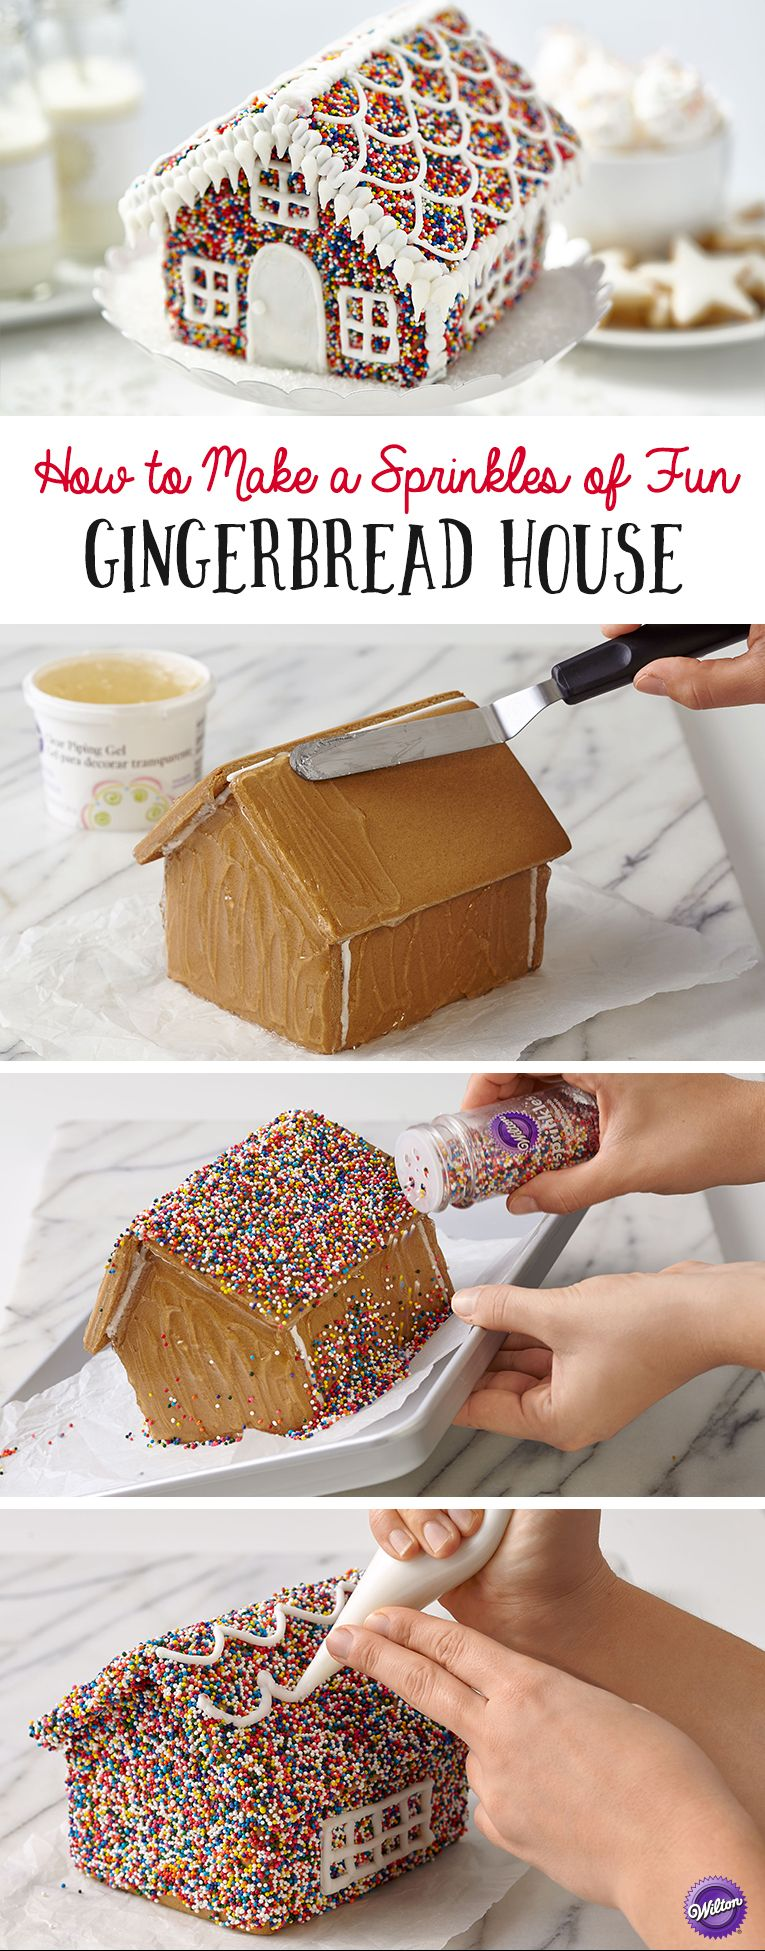 How to Make a Sprinkles of Fun Gingerbread House - Sprinkles make everything more fun, even your holiday gingerbread house! Adding rainbow nonpareils turns this iconic holiday centerpiece into a kaleidoscope of color.